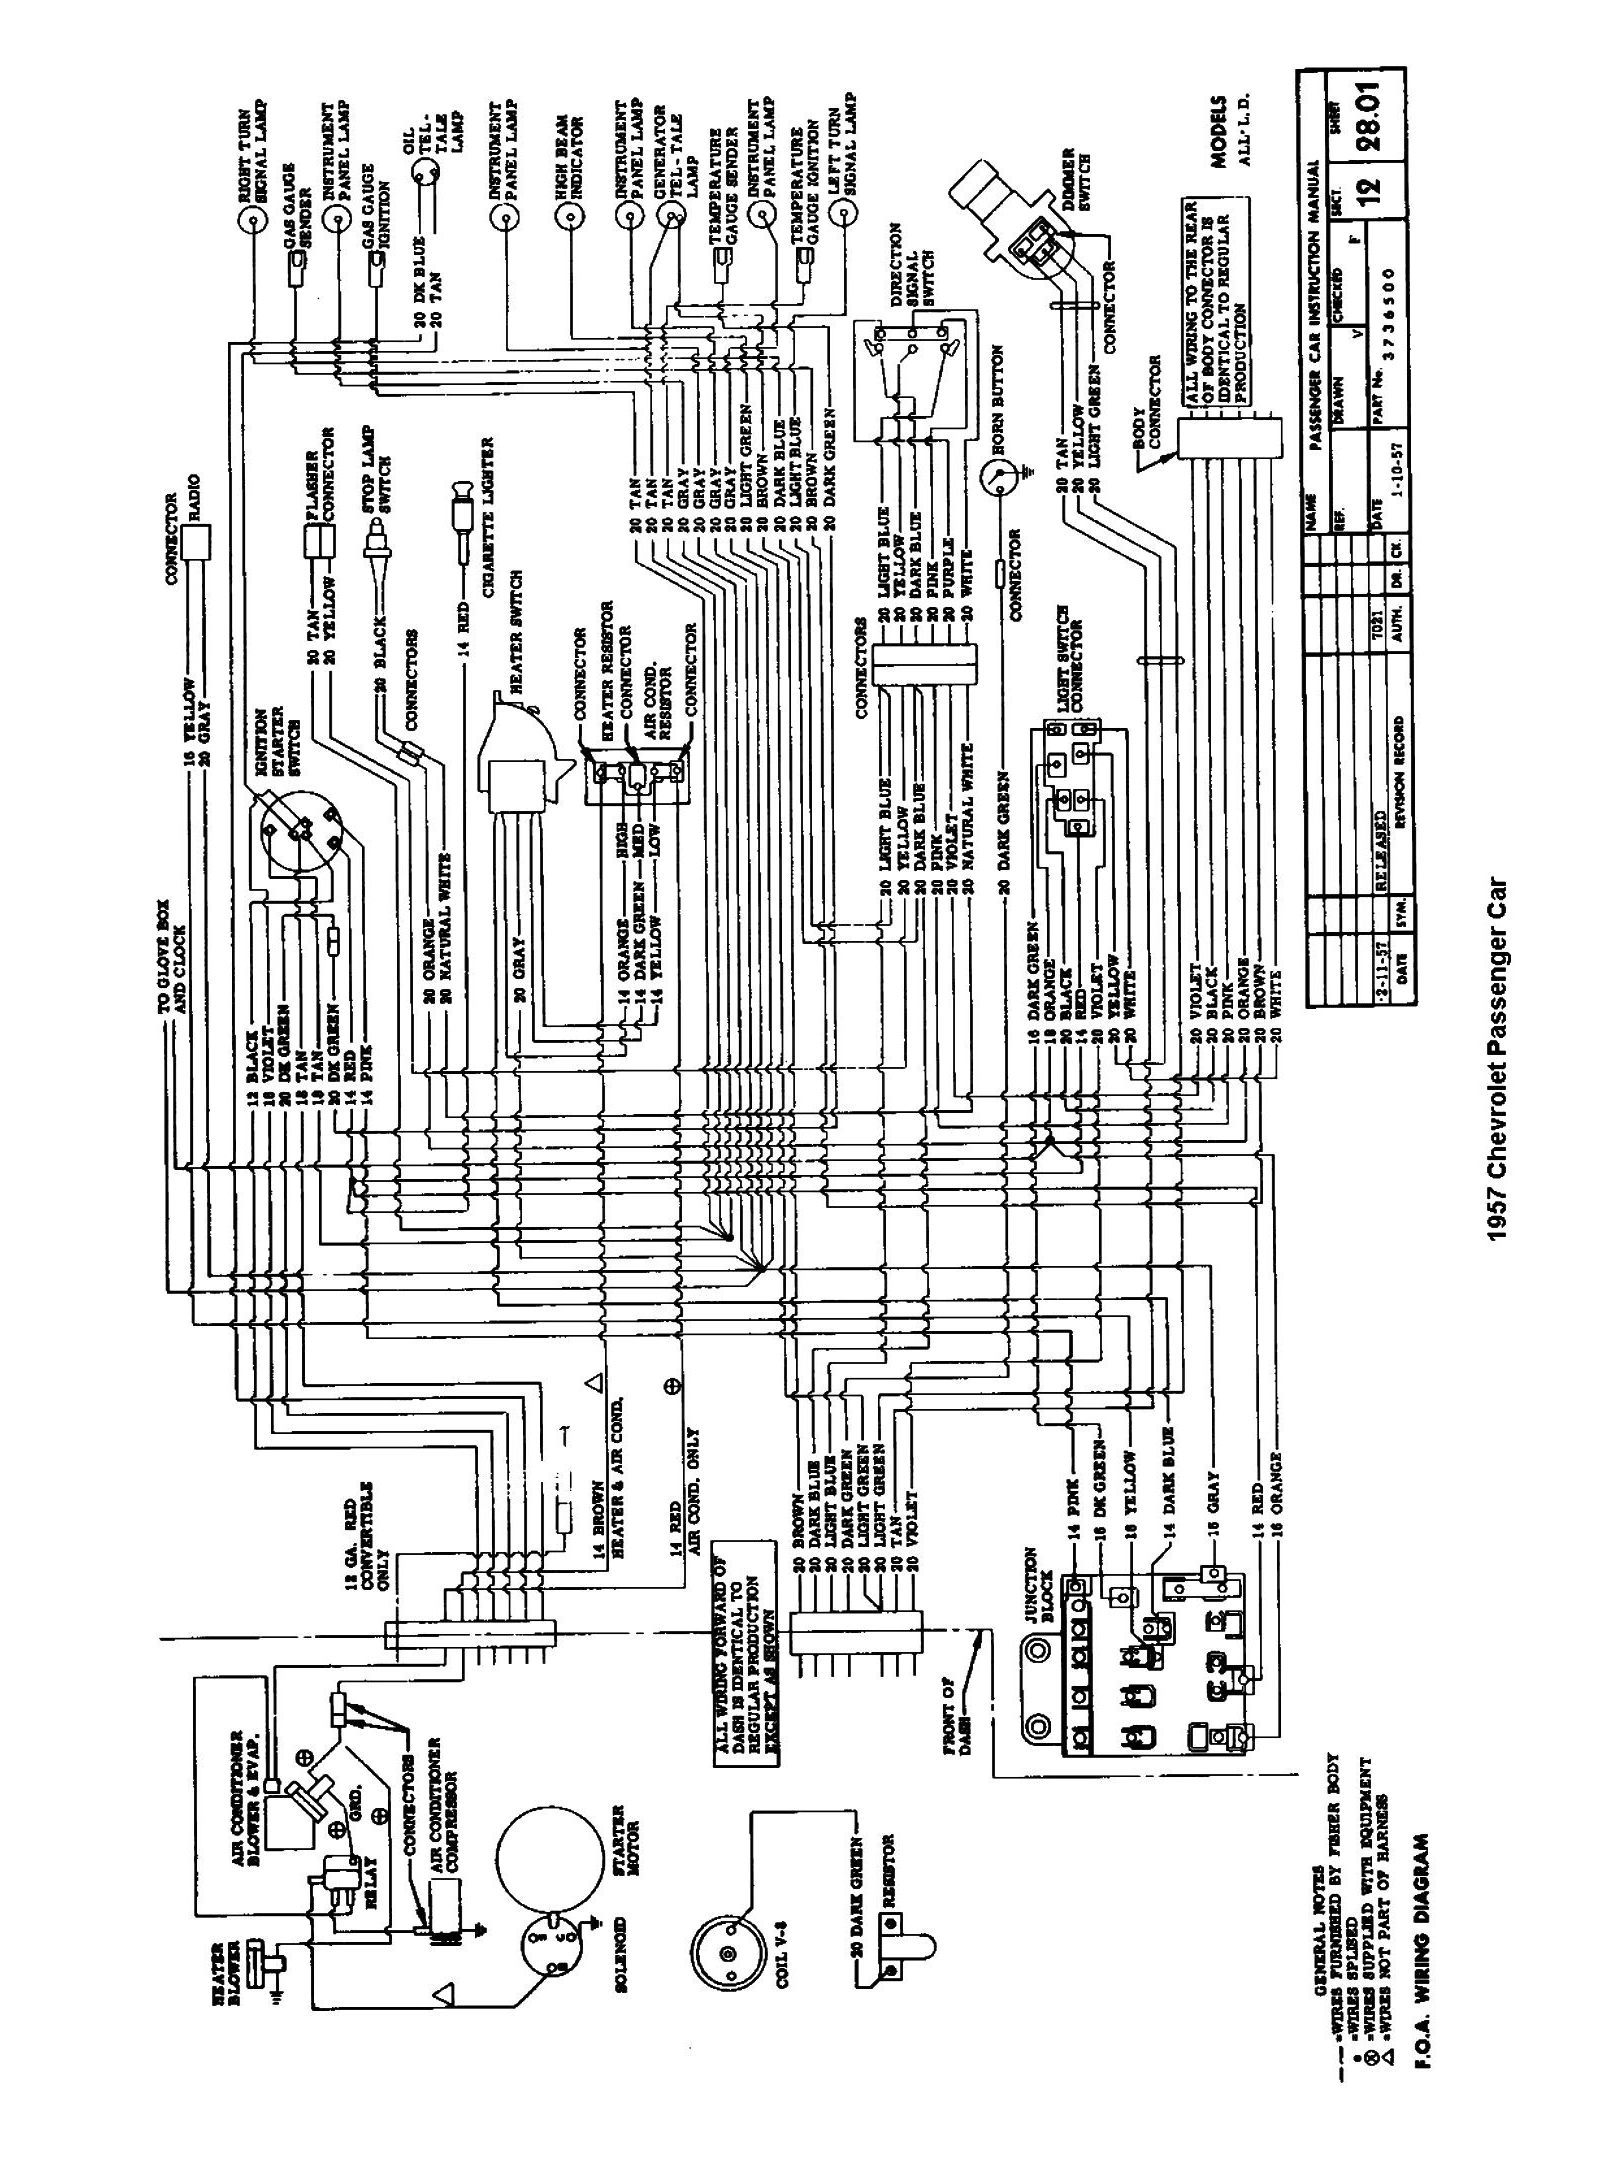 Chevy Wiring Diagrams 1960 Ignition Diagram 1957 Passenger Car 2